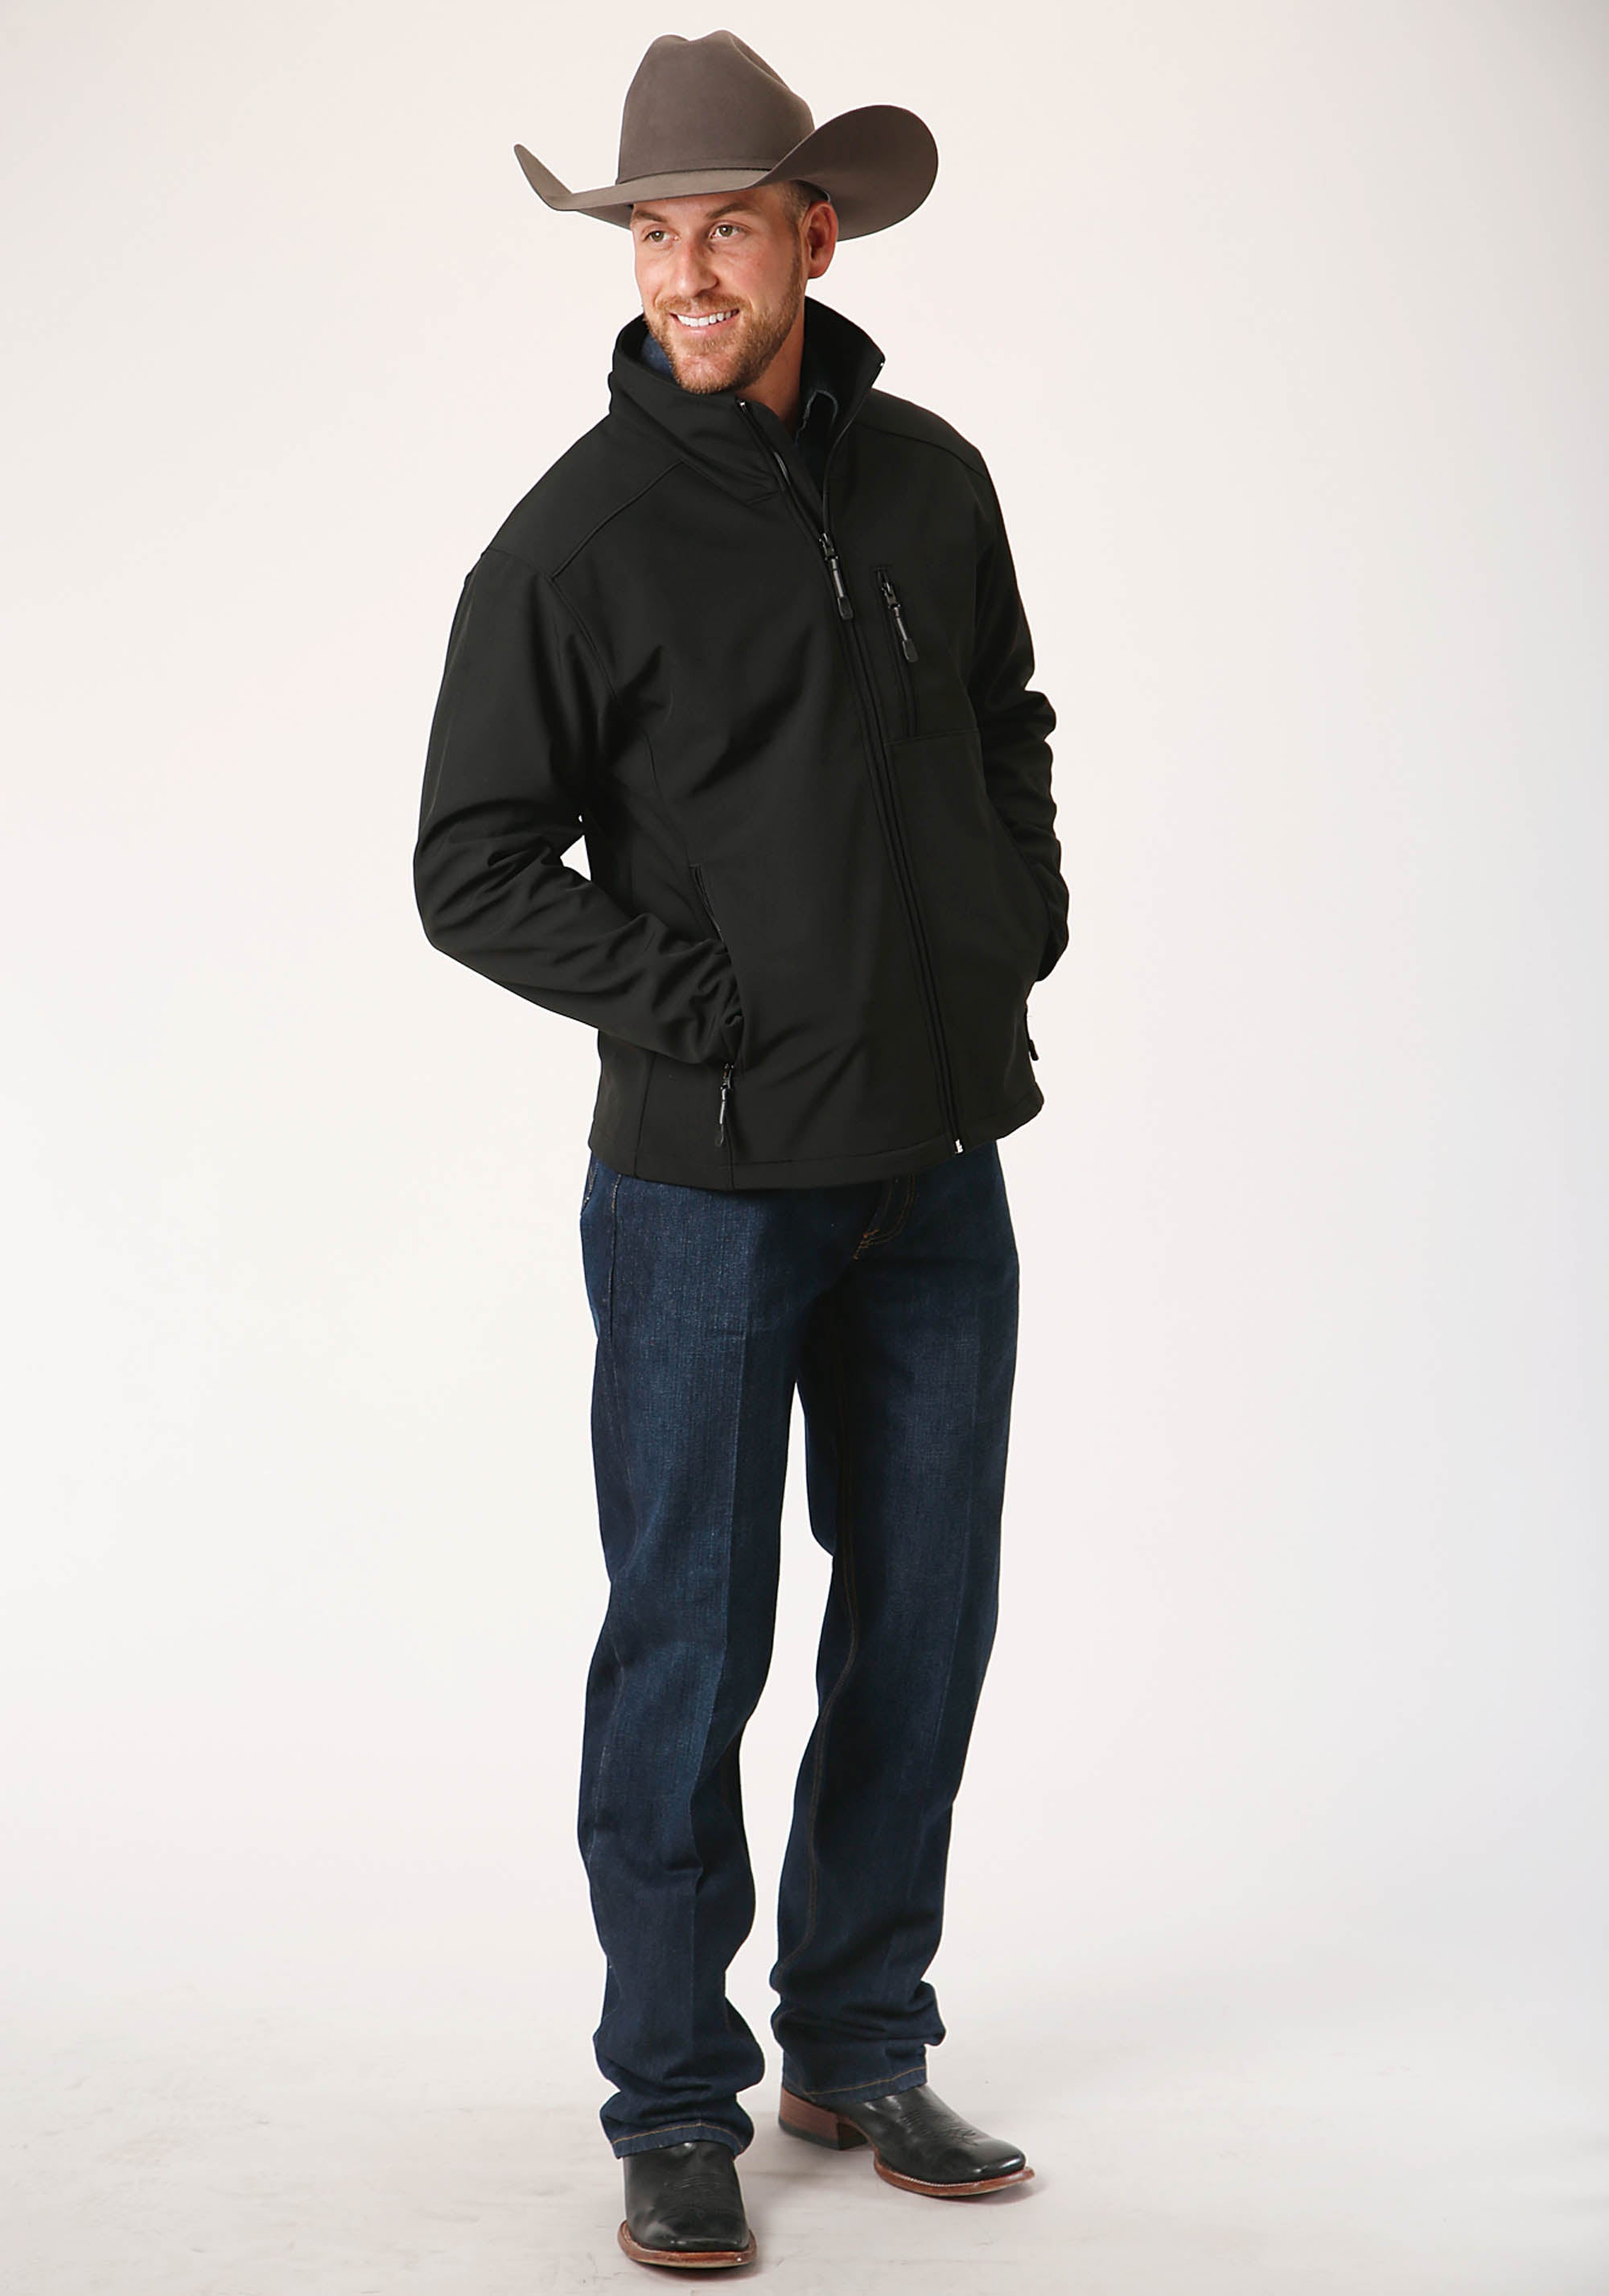 ROPER MENS BLACK 00259 BLACK W/BLACK SOFTSHELL JACKET ROPER OUTERWEAR- MEN'S INSTOCK JACKET